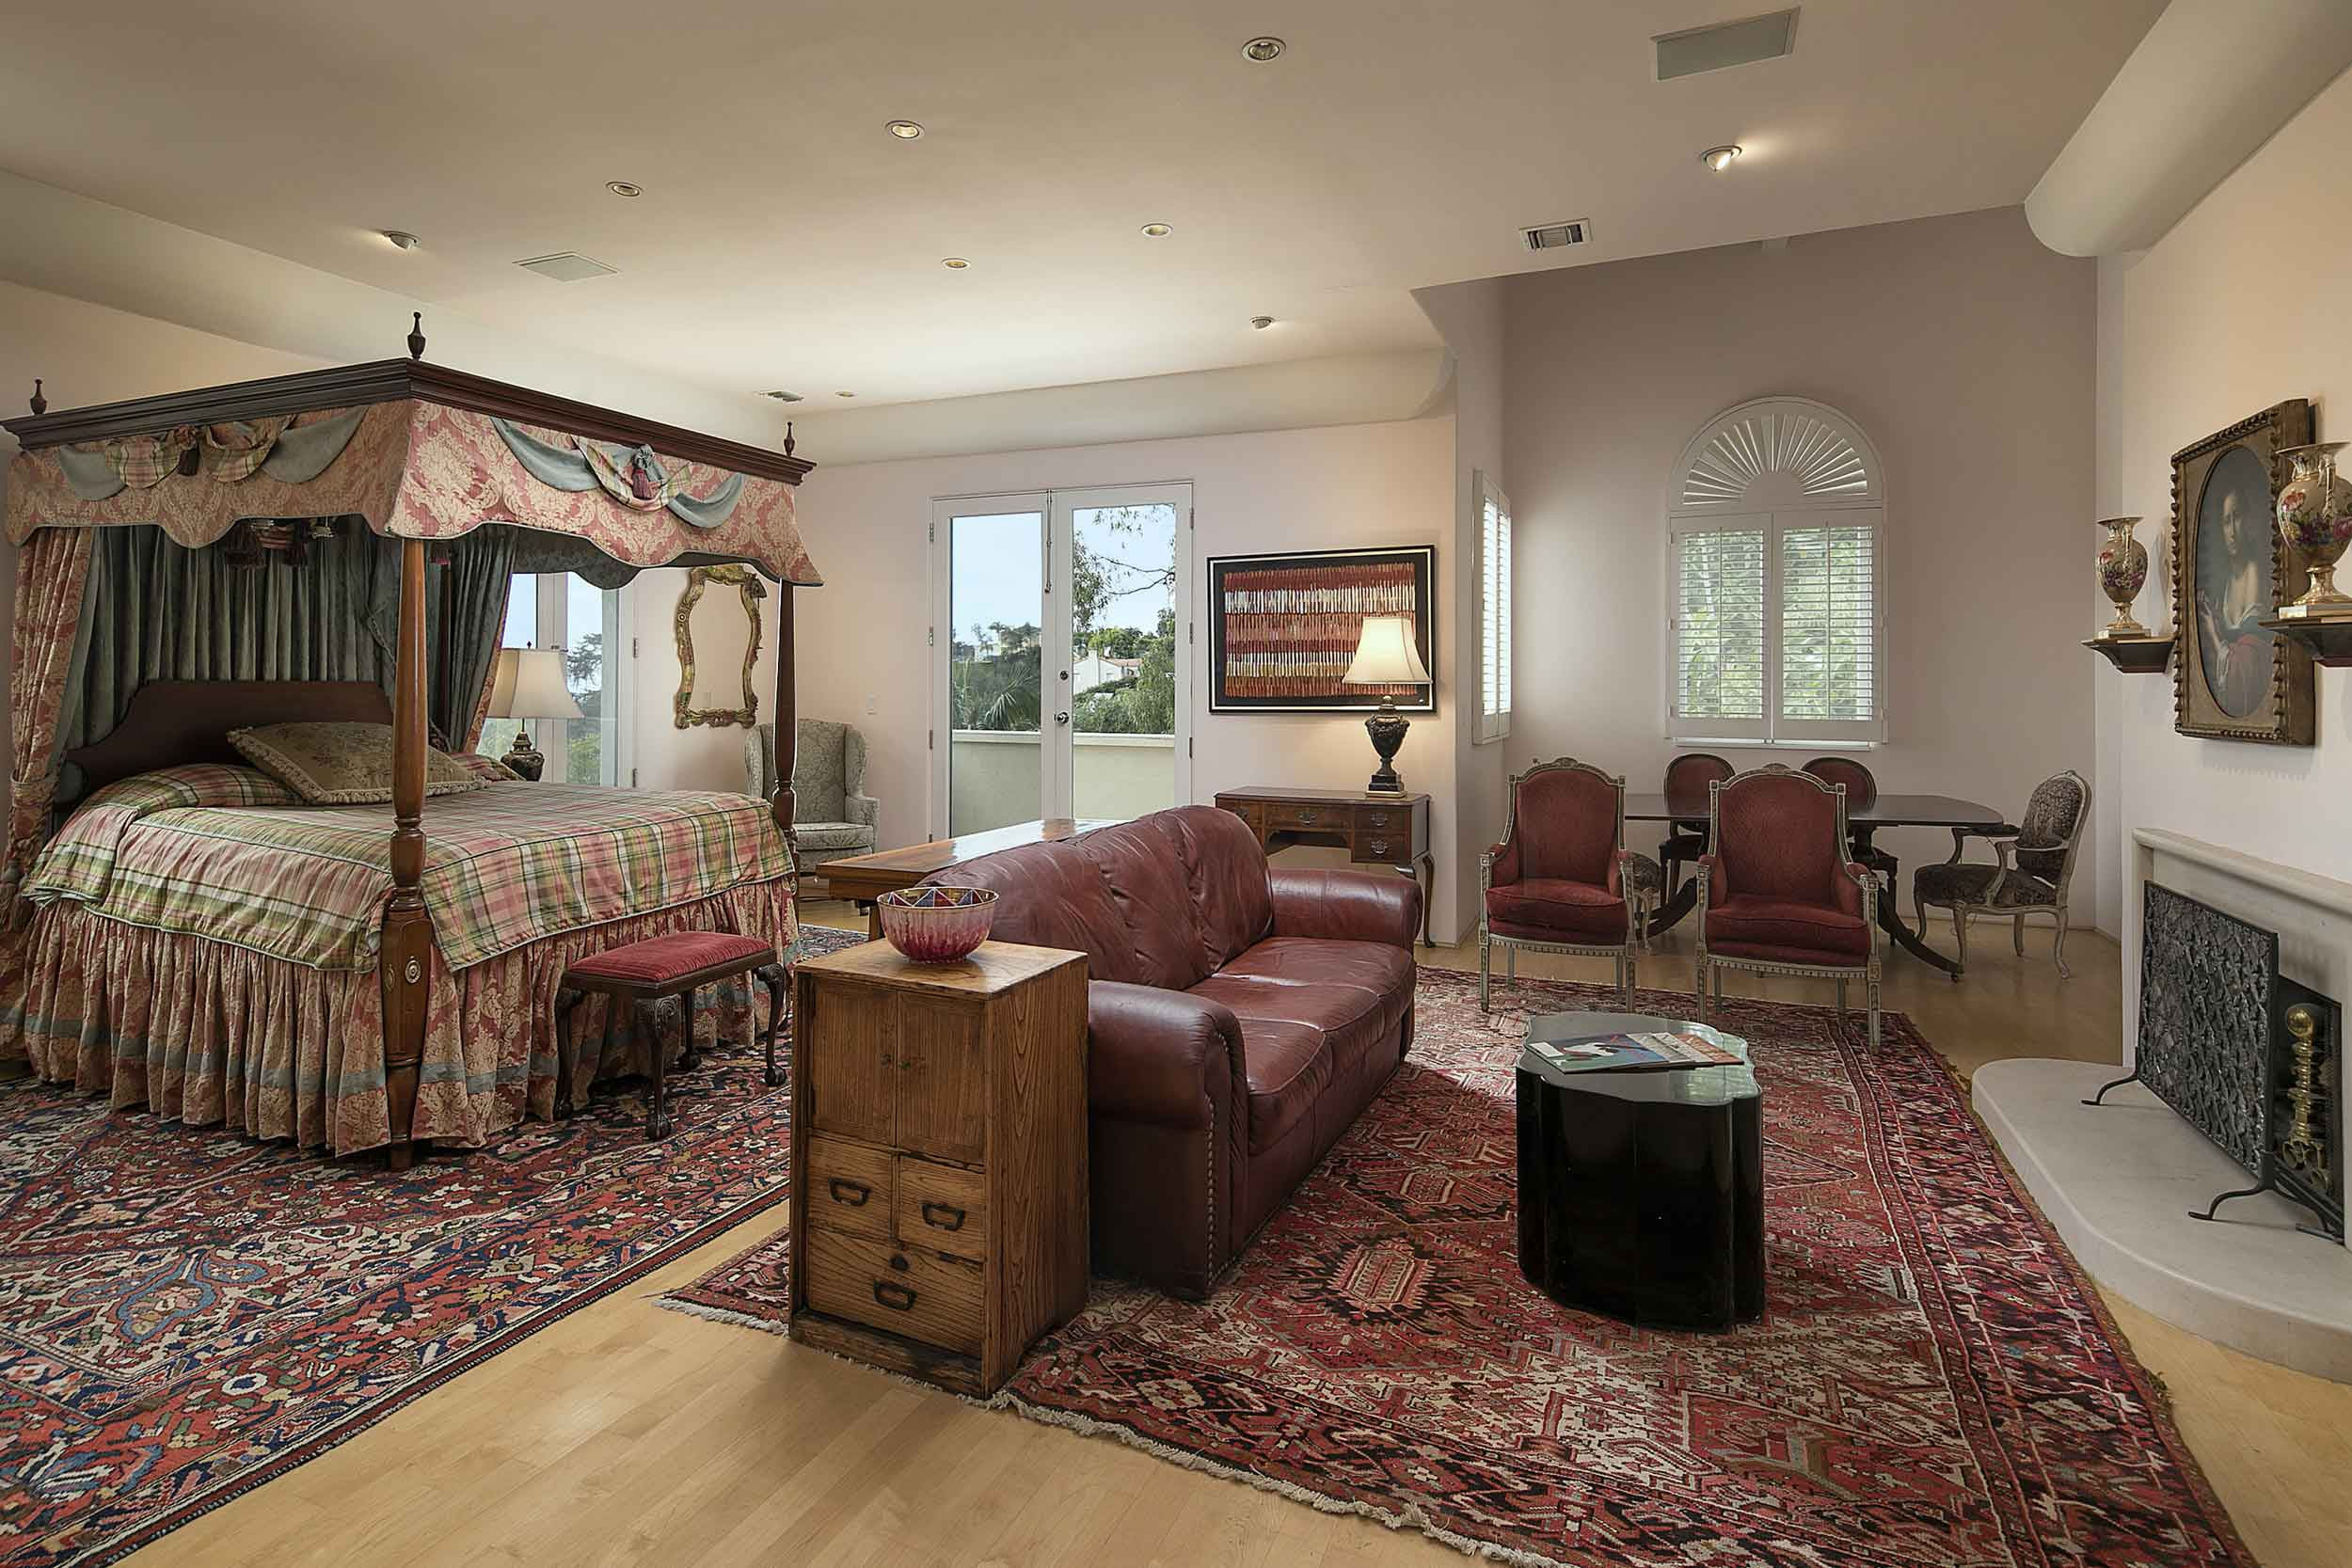 Vaulted ceilings and a welcoming hearth distinguish the home's generous master suite.